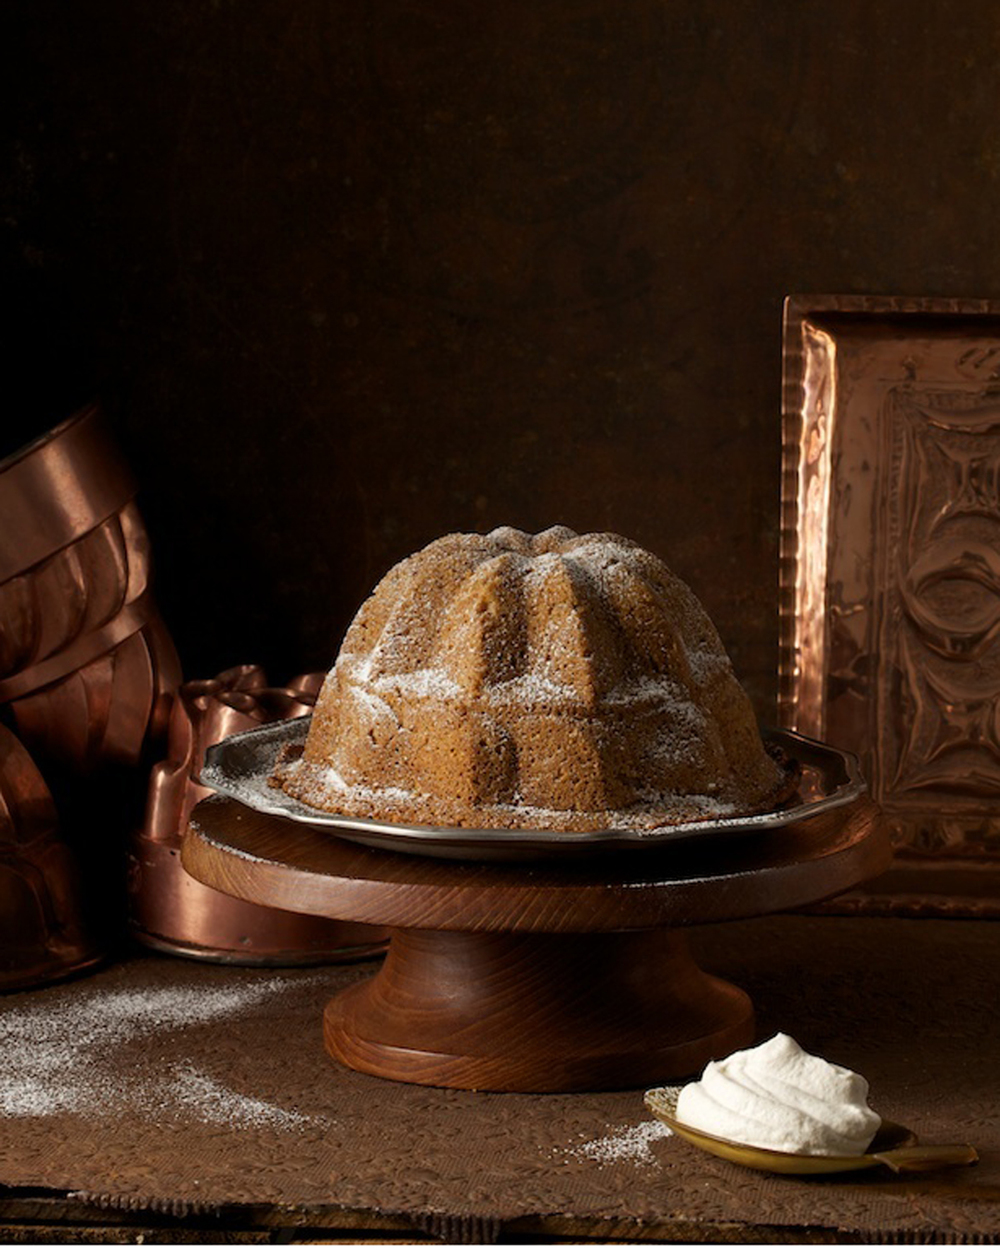 Beekman 1802 Heirloom Dessert Cookbook 2013 © Paulette Tavormina